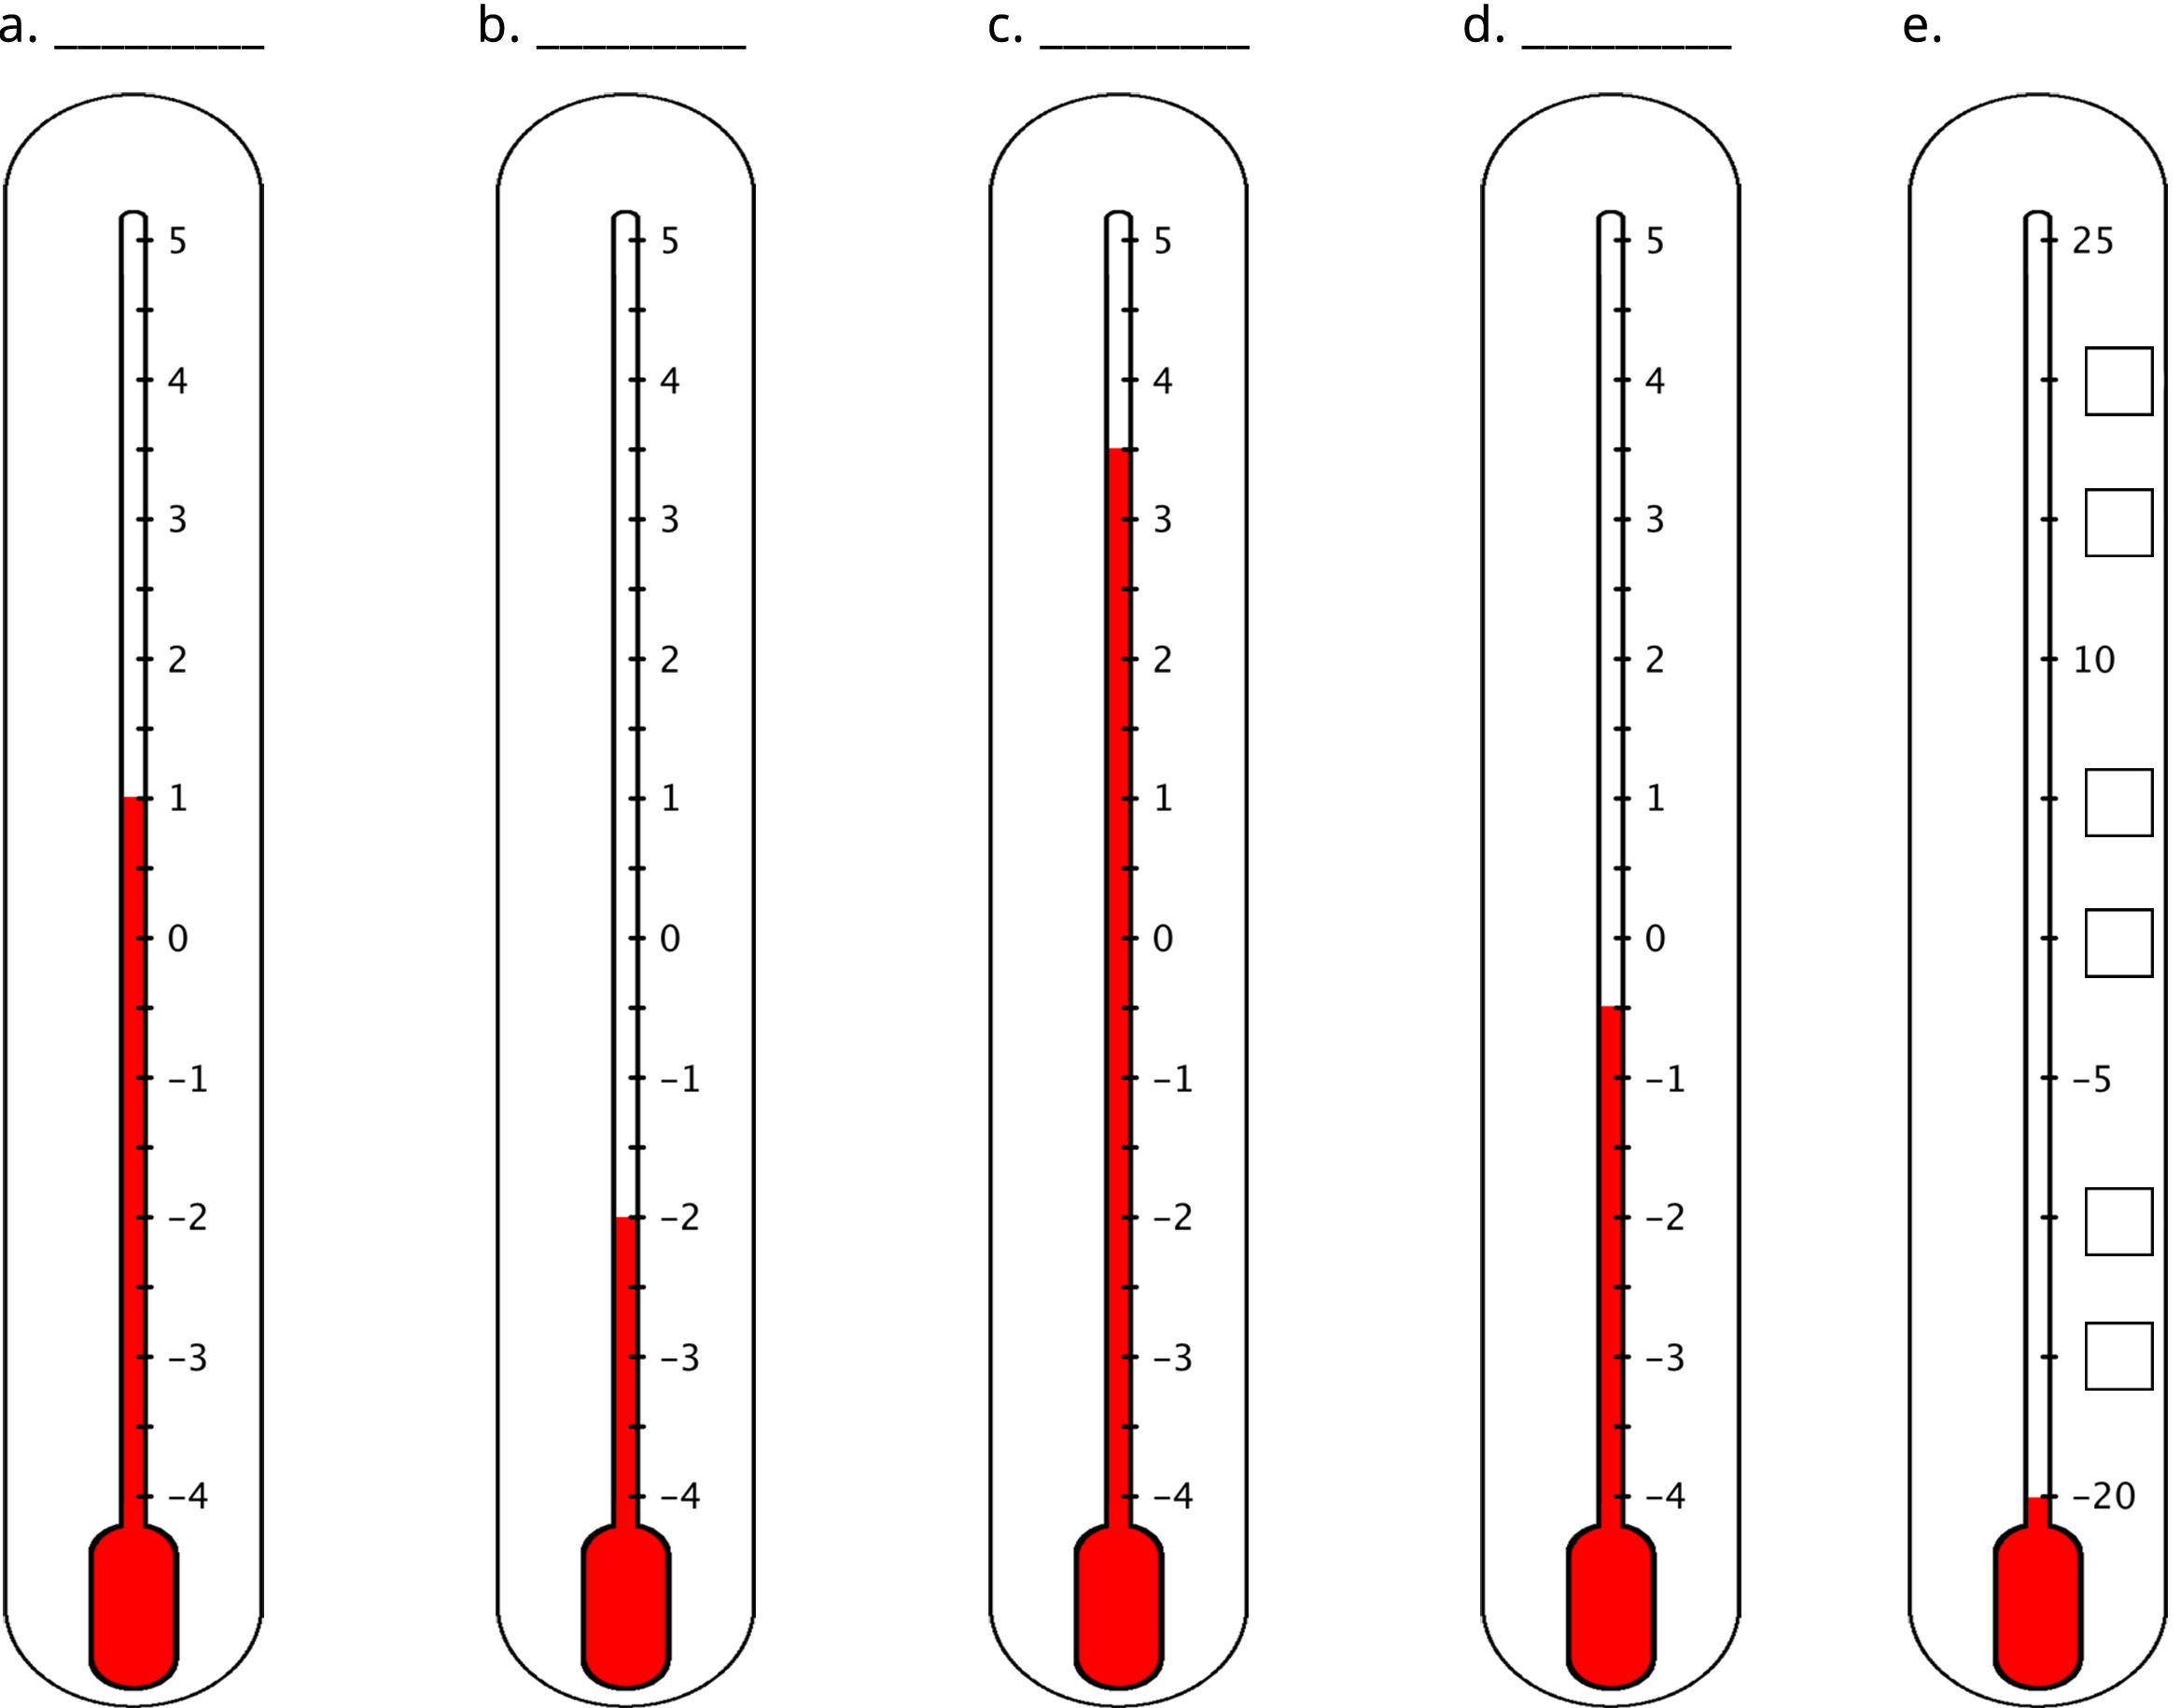 Five vertical thermometers are labeled a, b, c, d, and e.  Thermometer a has the numbers negative 4 to 5 indicated. The number 4 is on the bottom and 5 is on the top. The thermometer is shaded from the bottom of the thermometer to 1. Thermometer b has the numbers negative 4 to 5 indictaed. The number 4 is on the bottom and 5 is on the top. The thermometer is shaded from the bottom of the thermometer to negative 2.  Thermometer c has the numbers negative 4 to 5 indicated. The number 4 is on the bottom and 5 is on the top. The thermometer is shaded from the bottom of the thermometer to halfway between 3 and 4.  Thermometer d has the numbers negative 4 to 5 indicated. The number 4 is on the bottom and 5 is on the top. The thermometer is shaded from the bottom of the thermometer to halfway between negative 1 and zero.  Thermometer e has the numbers negative 20, negative 5, 10, and 25 indicated. There are 2 evenly spaced tick marks with missing labels between negative 20 and negative 5, between negative 5 and 10, and between 10 and 25. The thermometer is shaded from the bottom of the thermometer to negative 20.